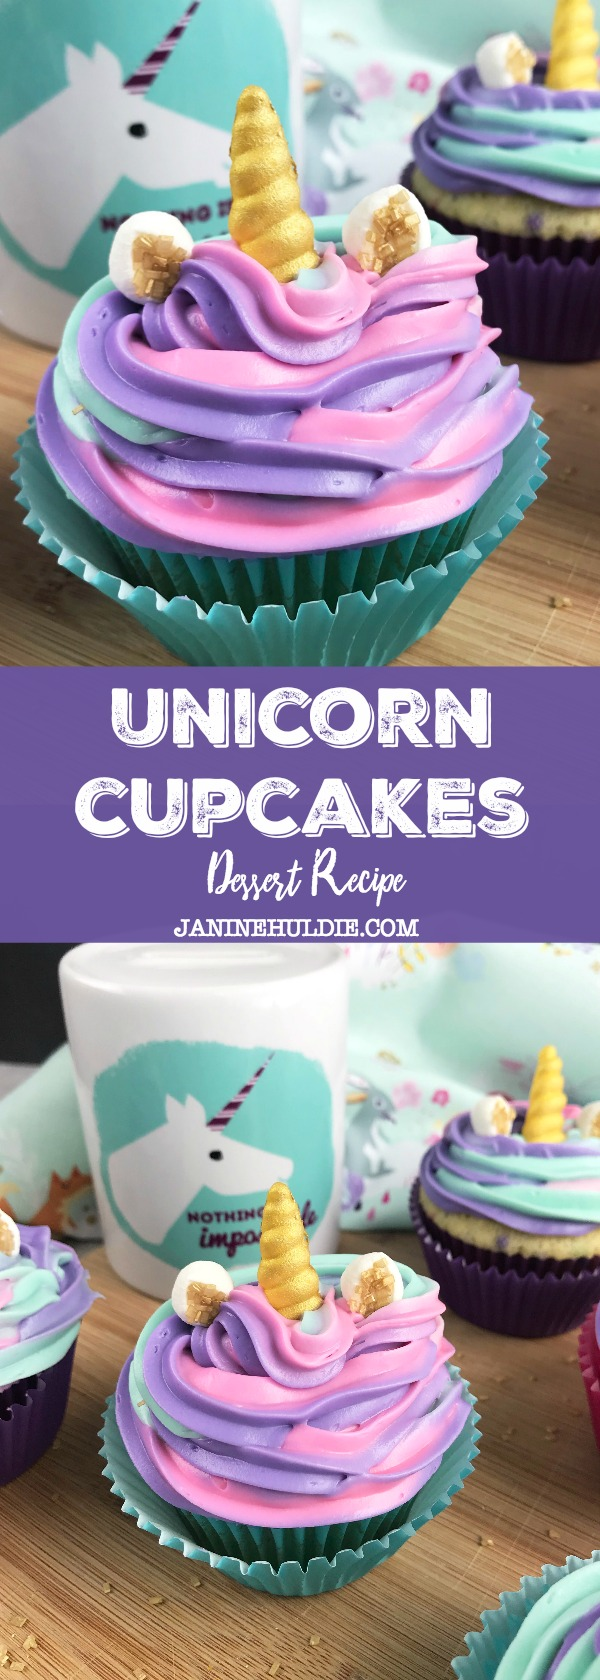 Unicorn Cupcakes Recipe Tutorial For All Unicorn Lovers